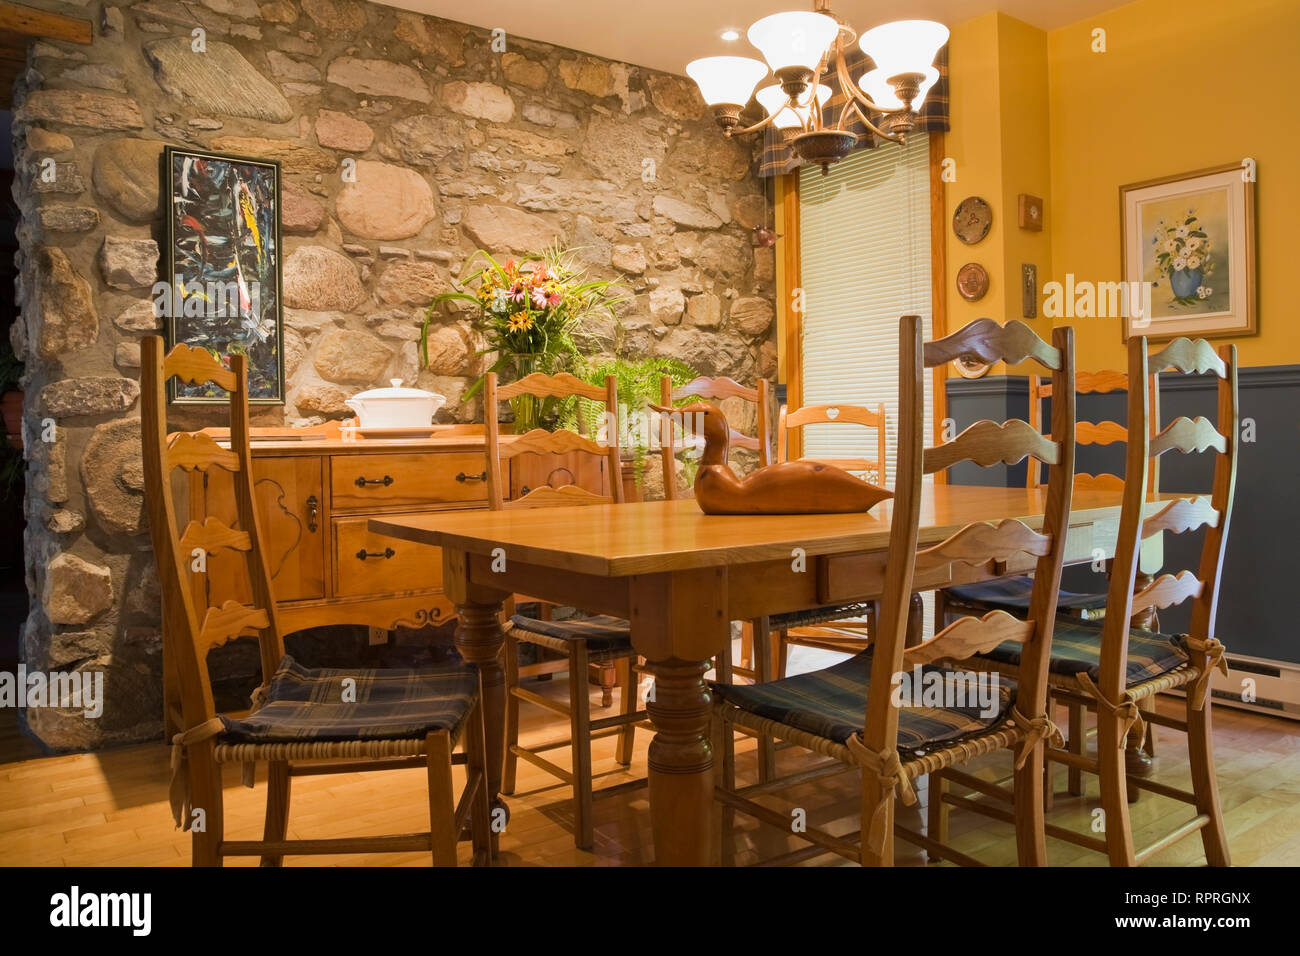 Antique table, chairs and furnishings in the kitchen of an old circa 1733 Canadiana cottage style fieldstone home - Stock Image